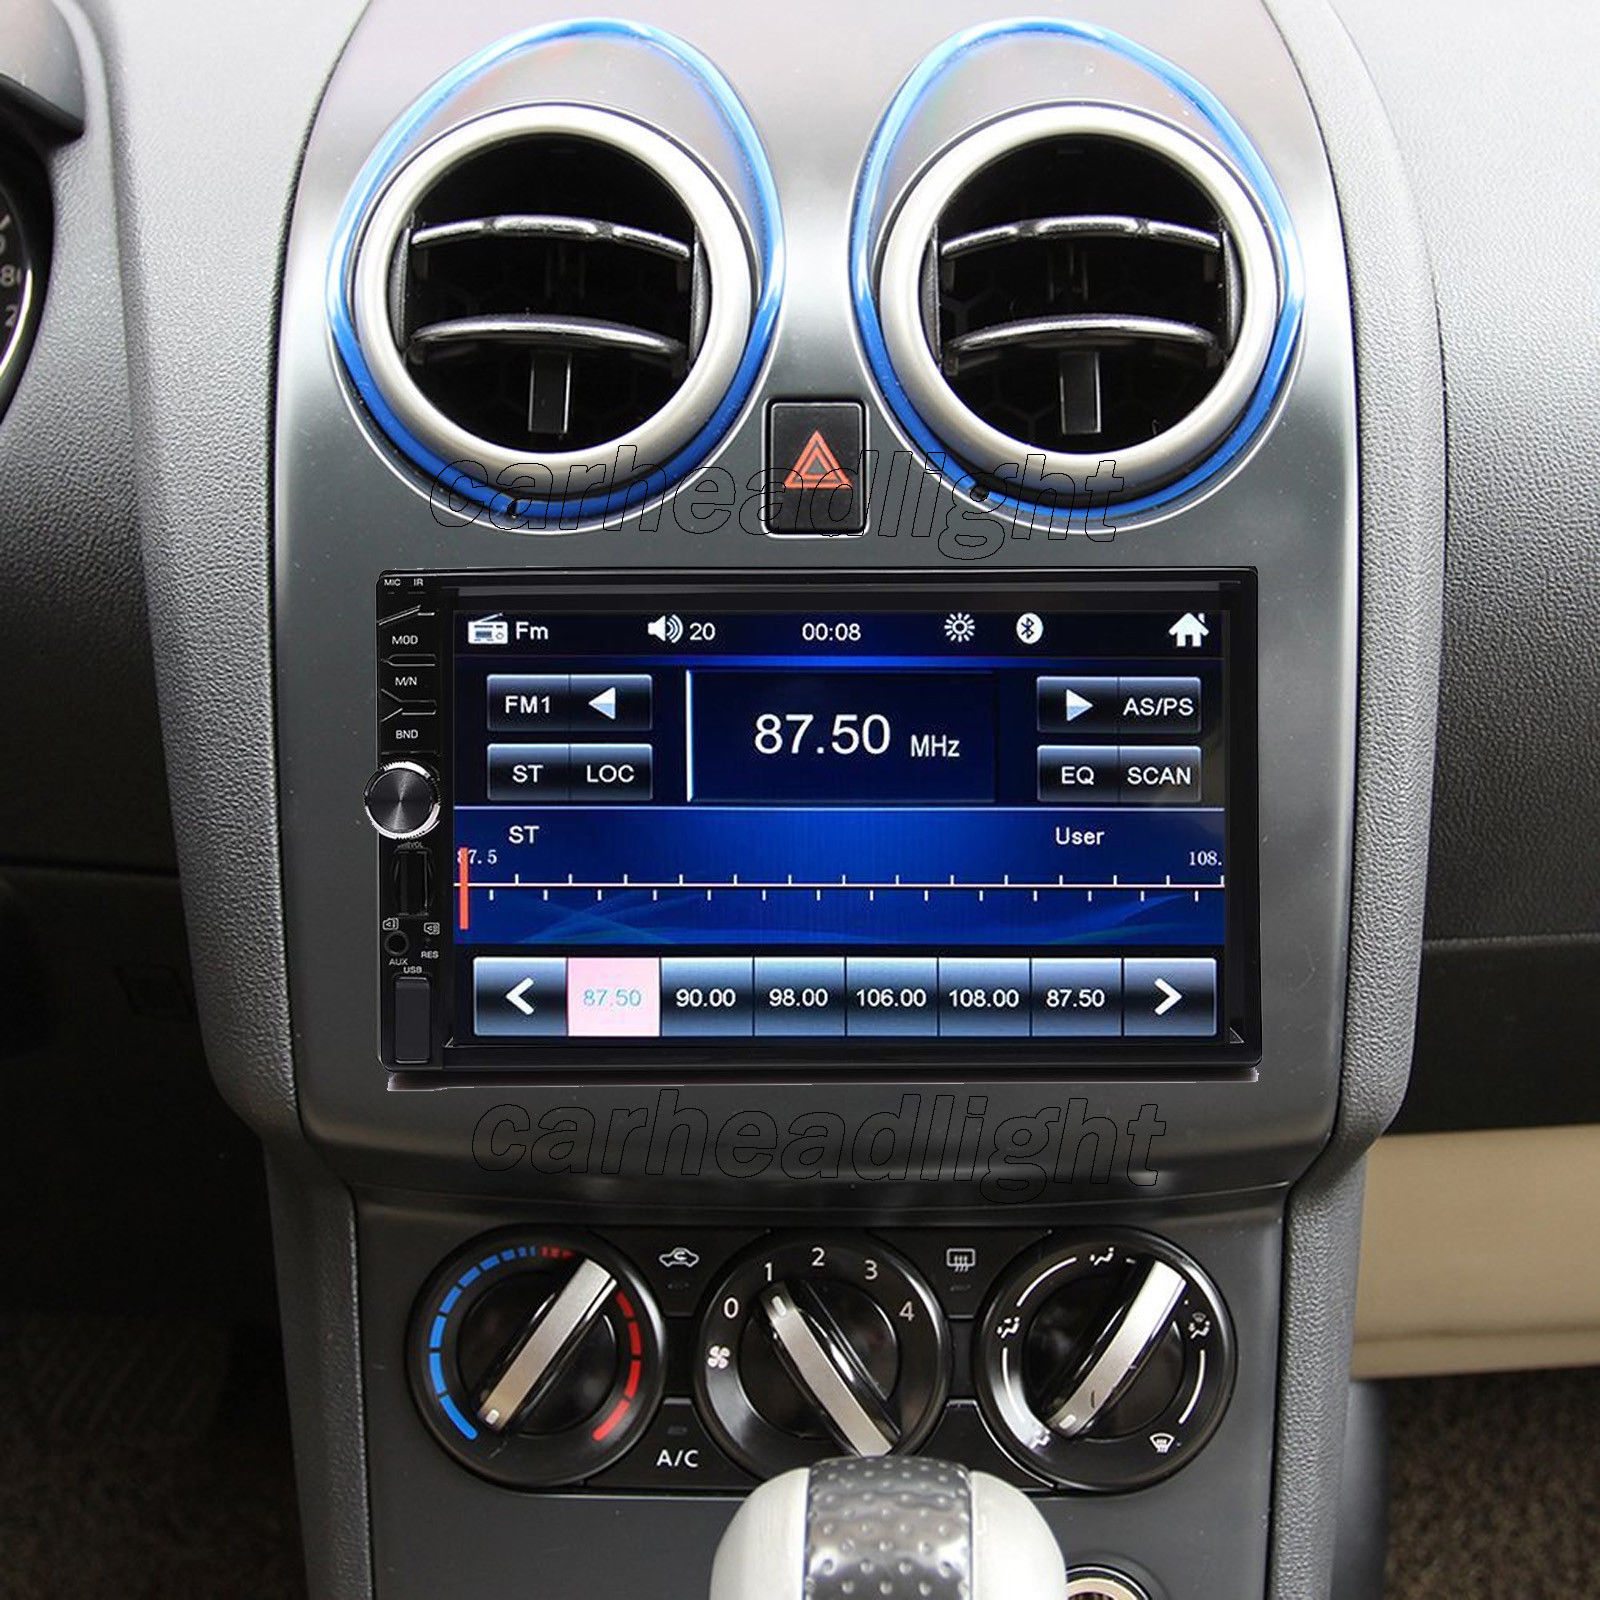 Great 7 Inch Double Din Bluetooth Car Stereo With Backup Camera